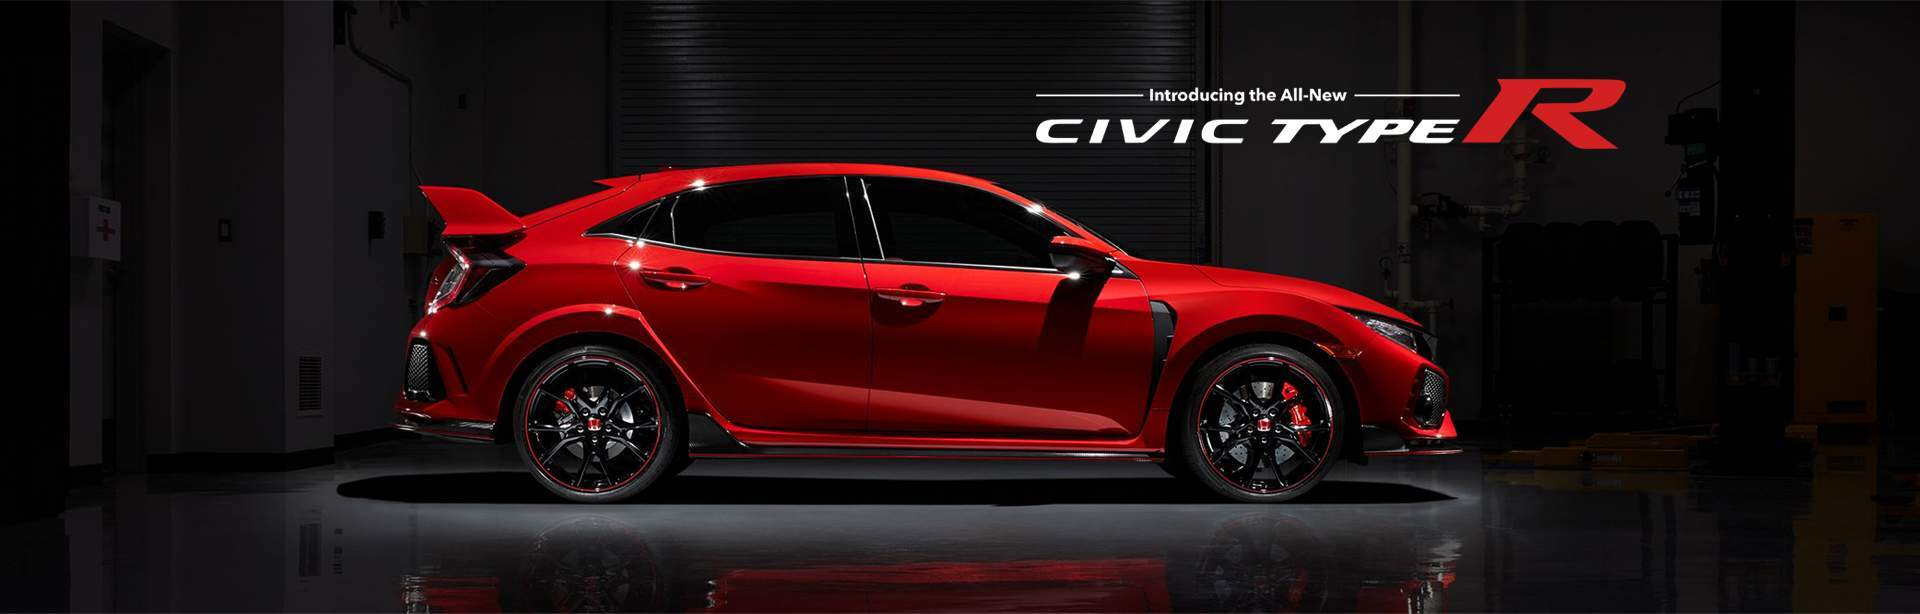 New Civic